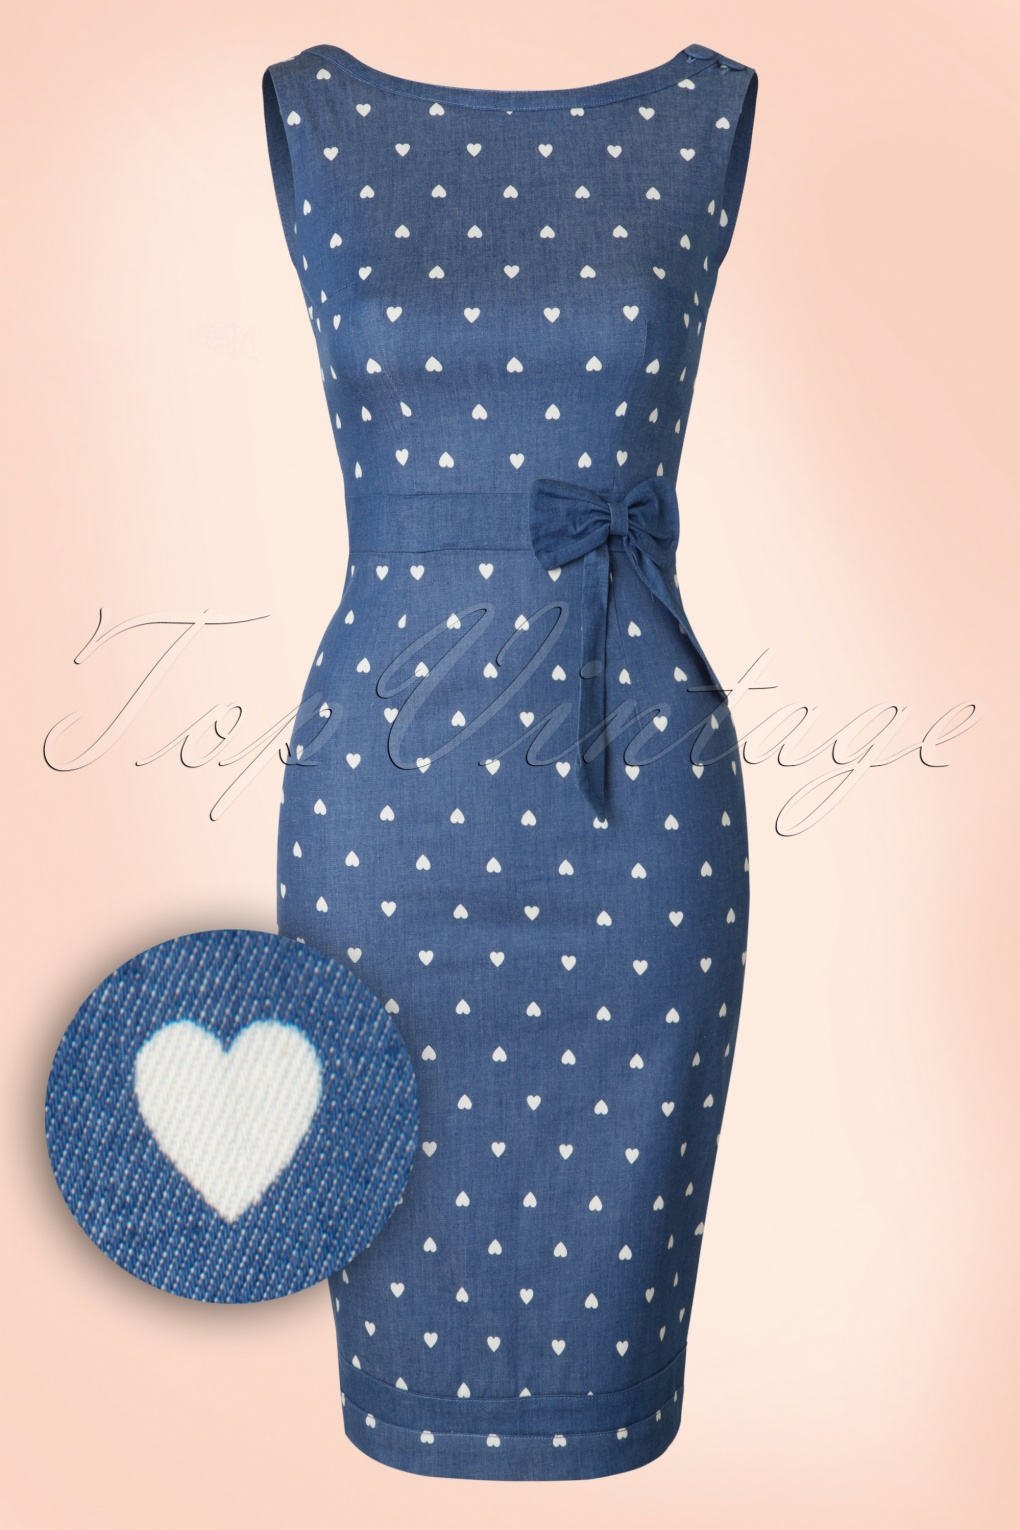 1950s Polka Dot Dresses 50s Judy Hearts Dress in Denim £47.21 AT vintagedancer.com